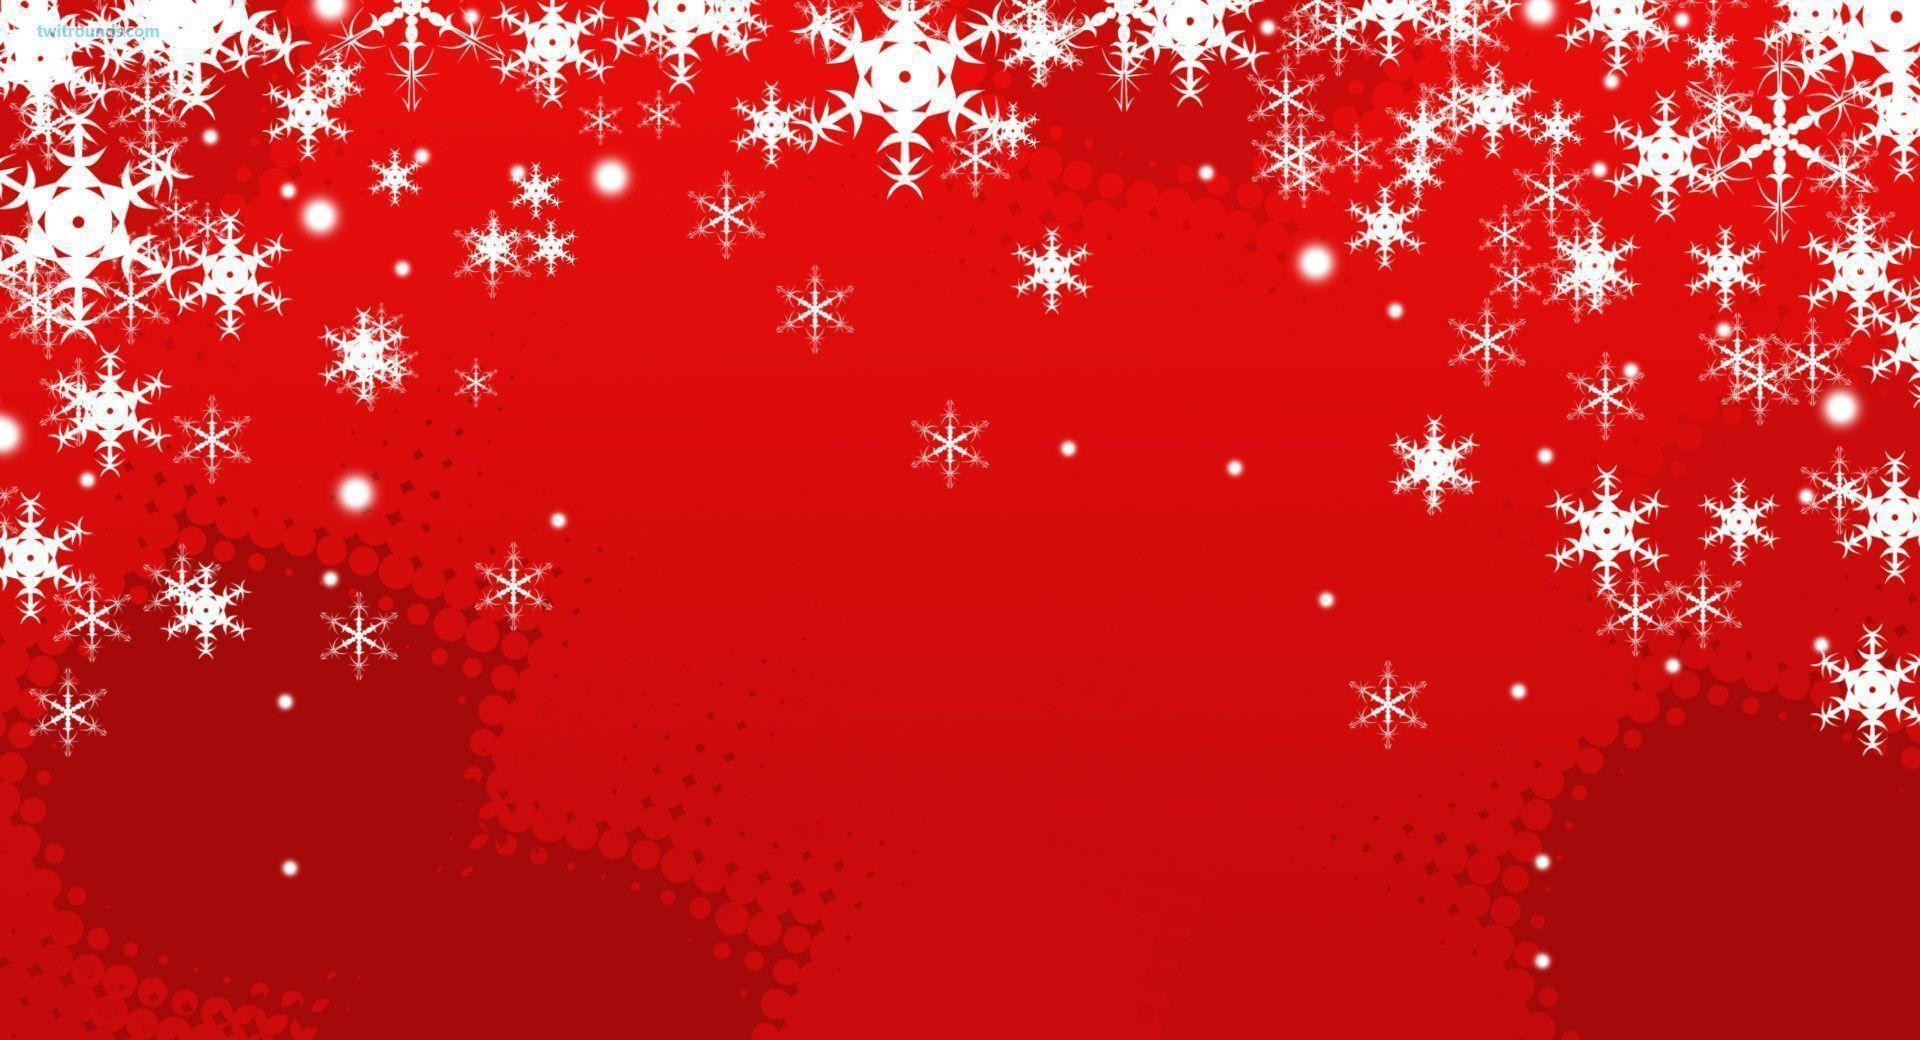 Christmas Backgrounds 40 awesome image 408173 High Definition